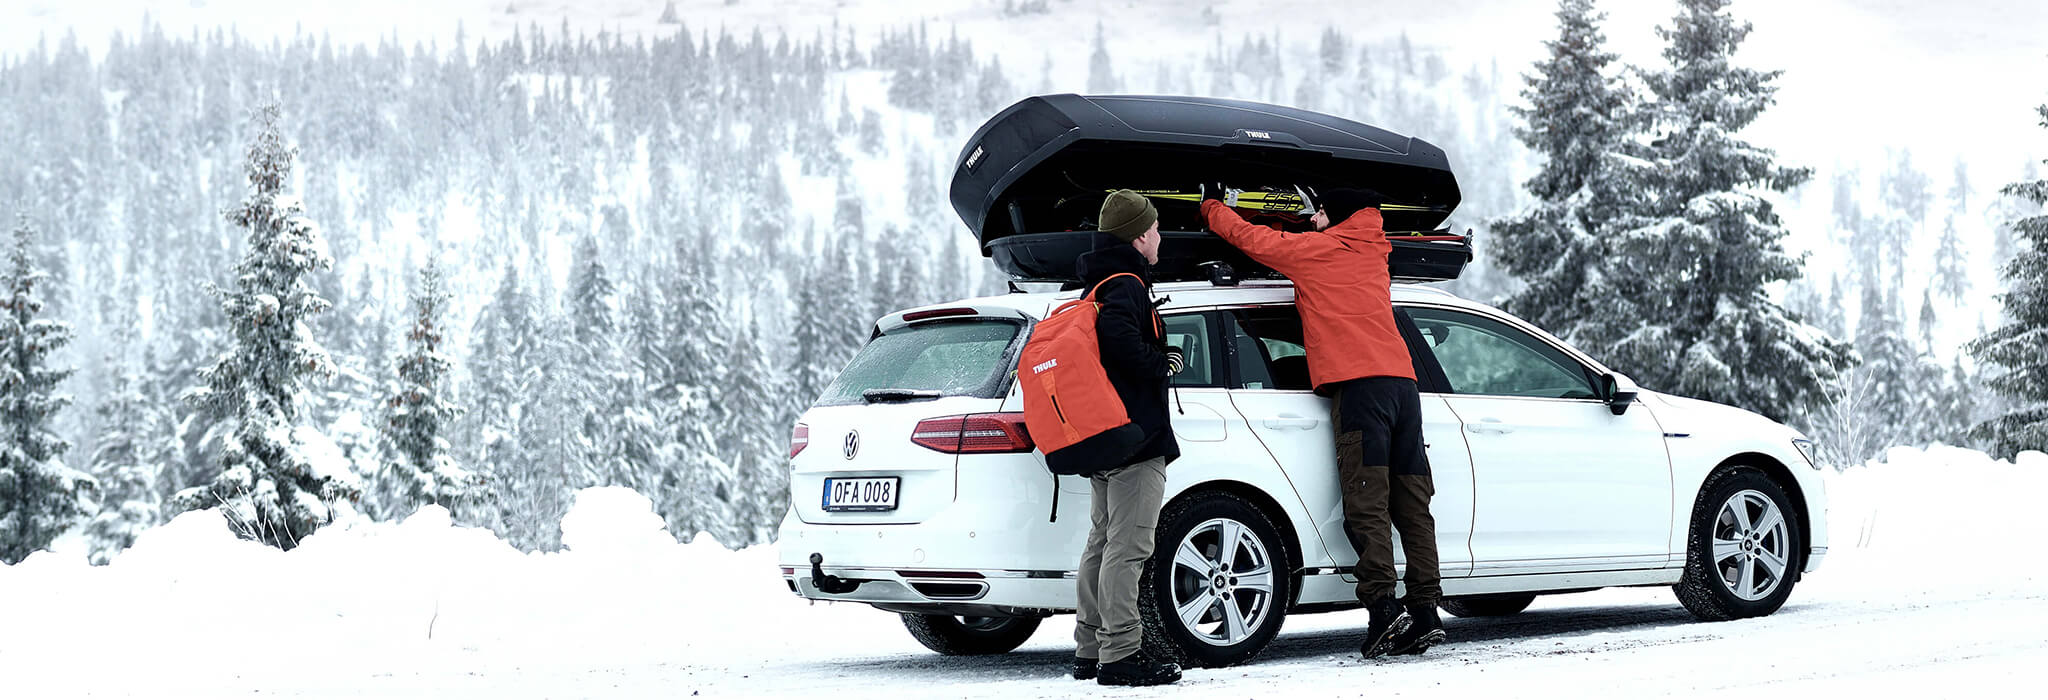 Thule motion XT roof box in winter